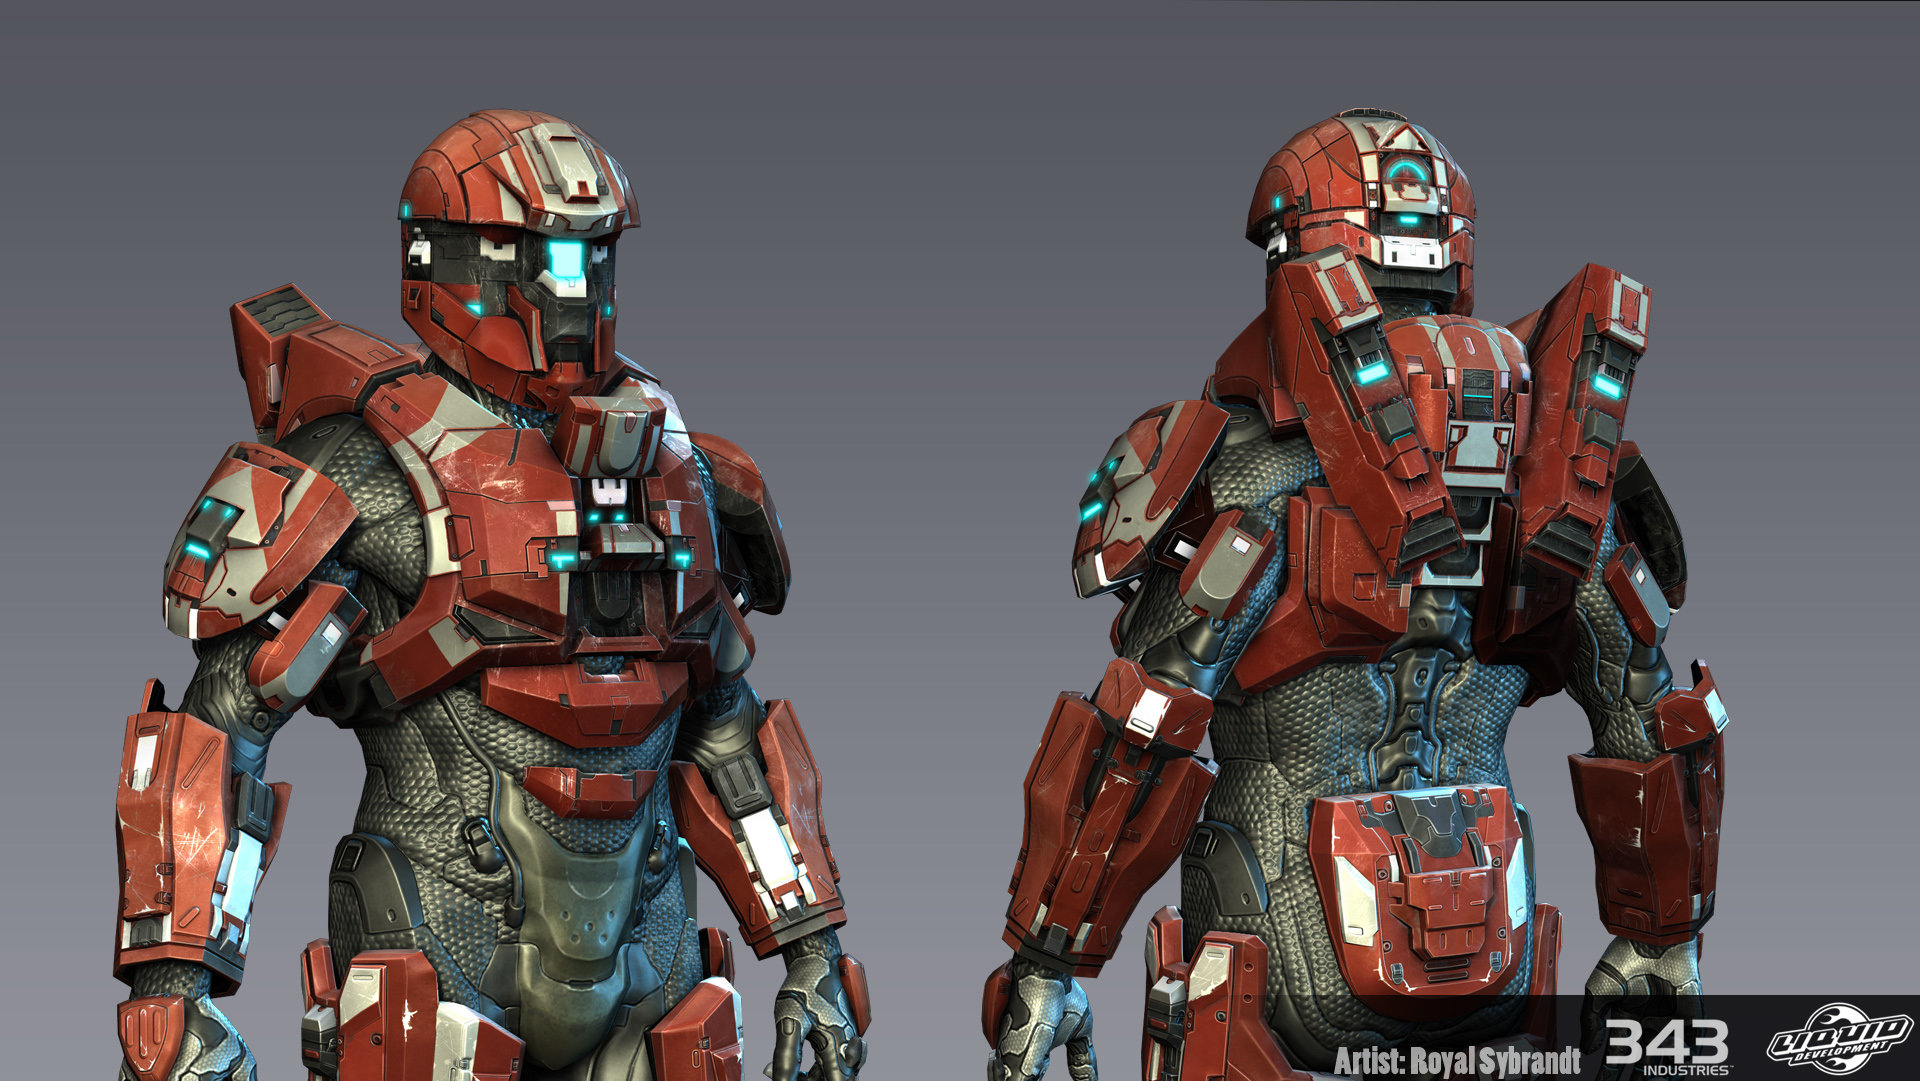 Artstation Halo 4 Vanguard Armor Royal Sybrandt